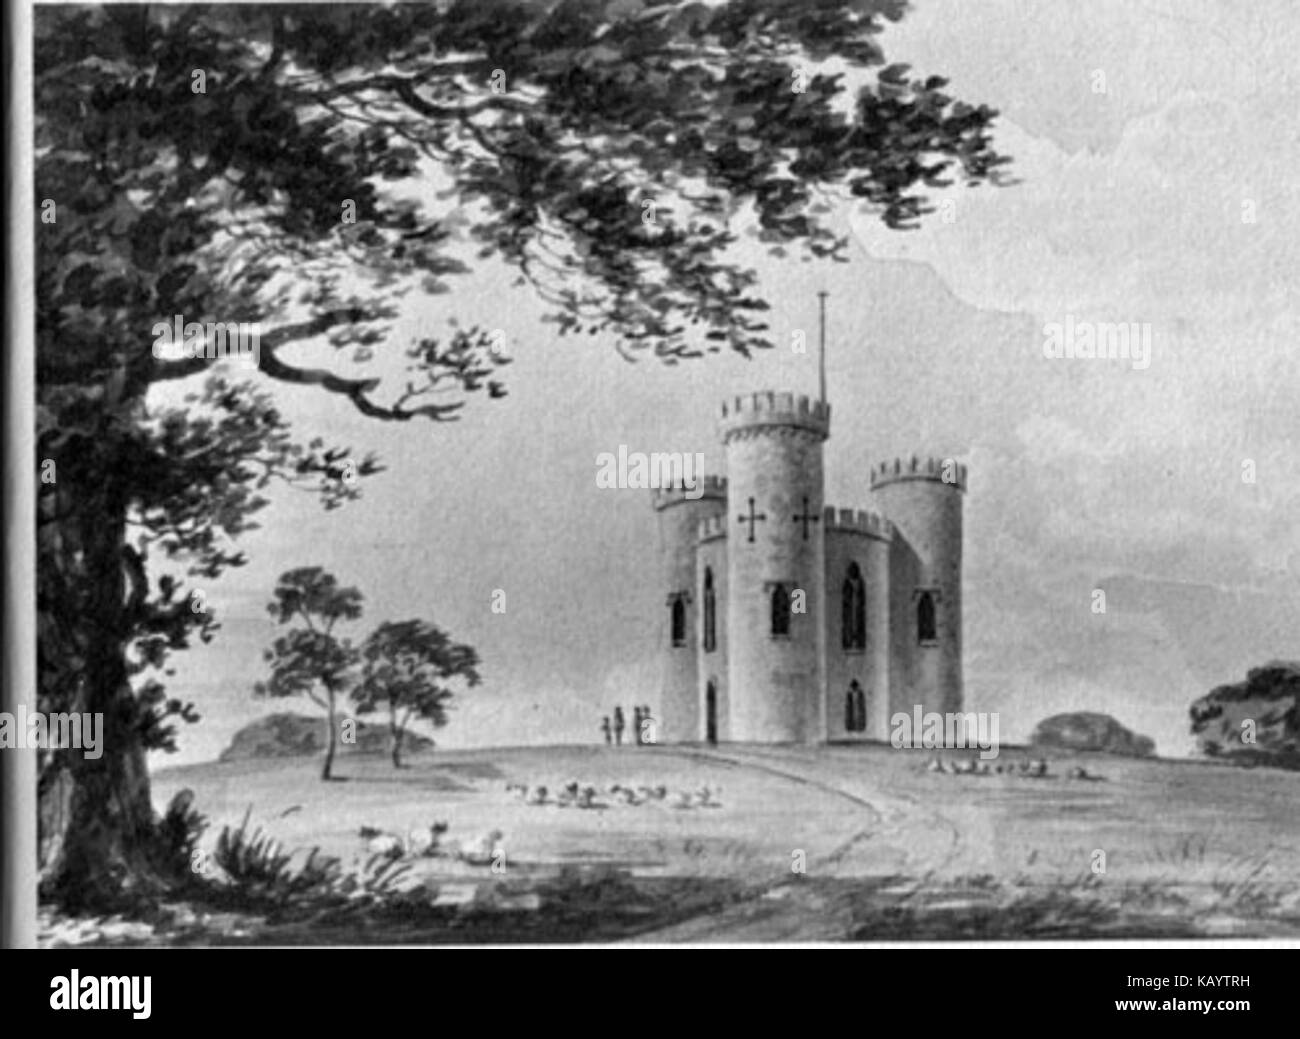 repton women Find the perfect humphry repton repton stock photo huge collection, amazing choice, 100+ million high quality, affordable rf and rm images no need to register, buy now.